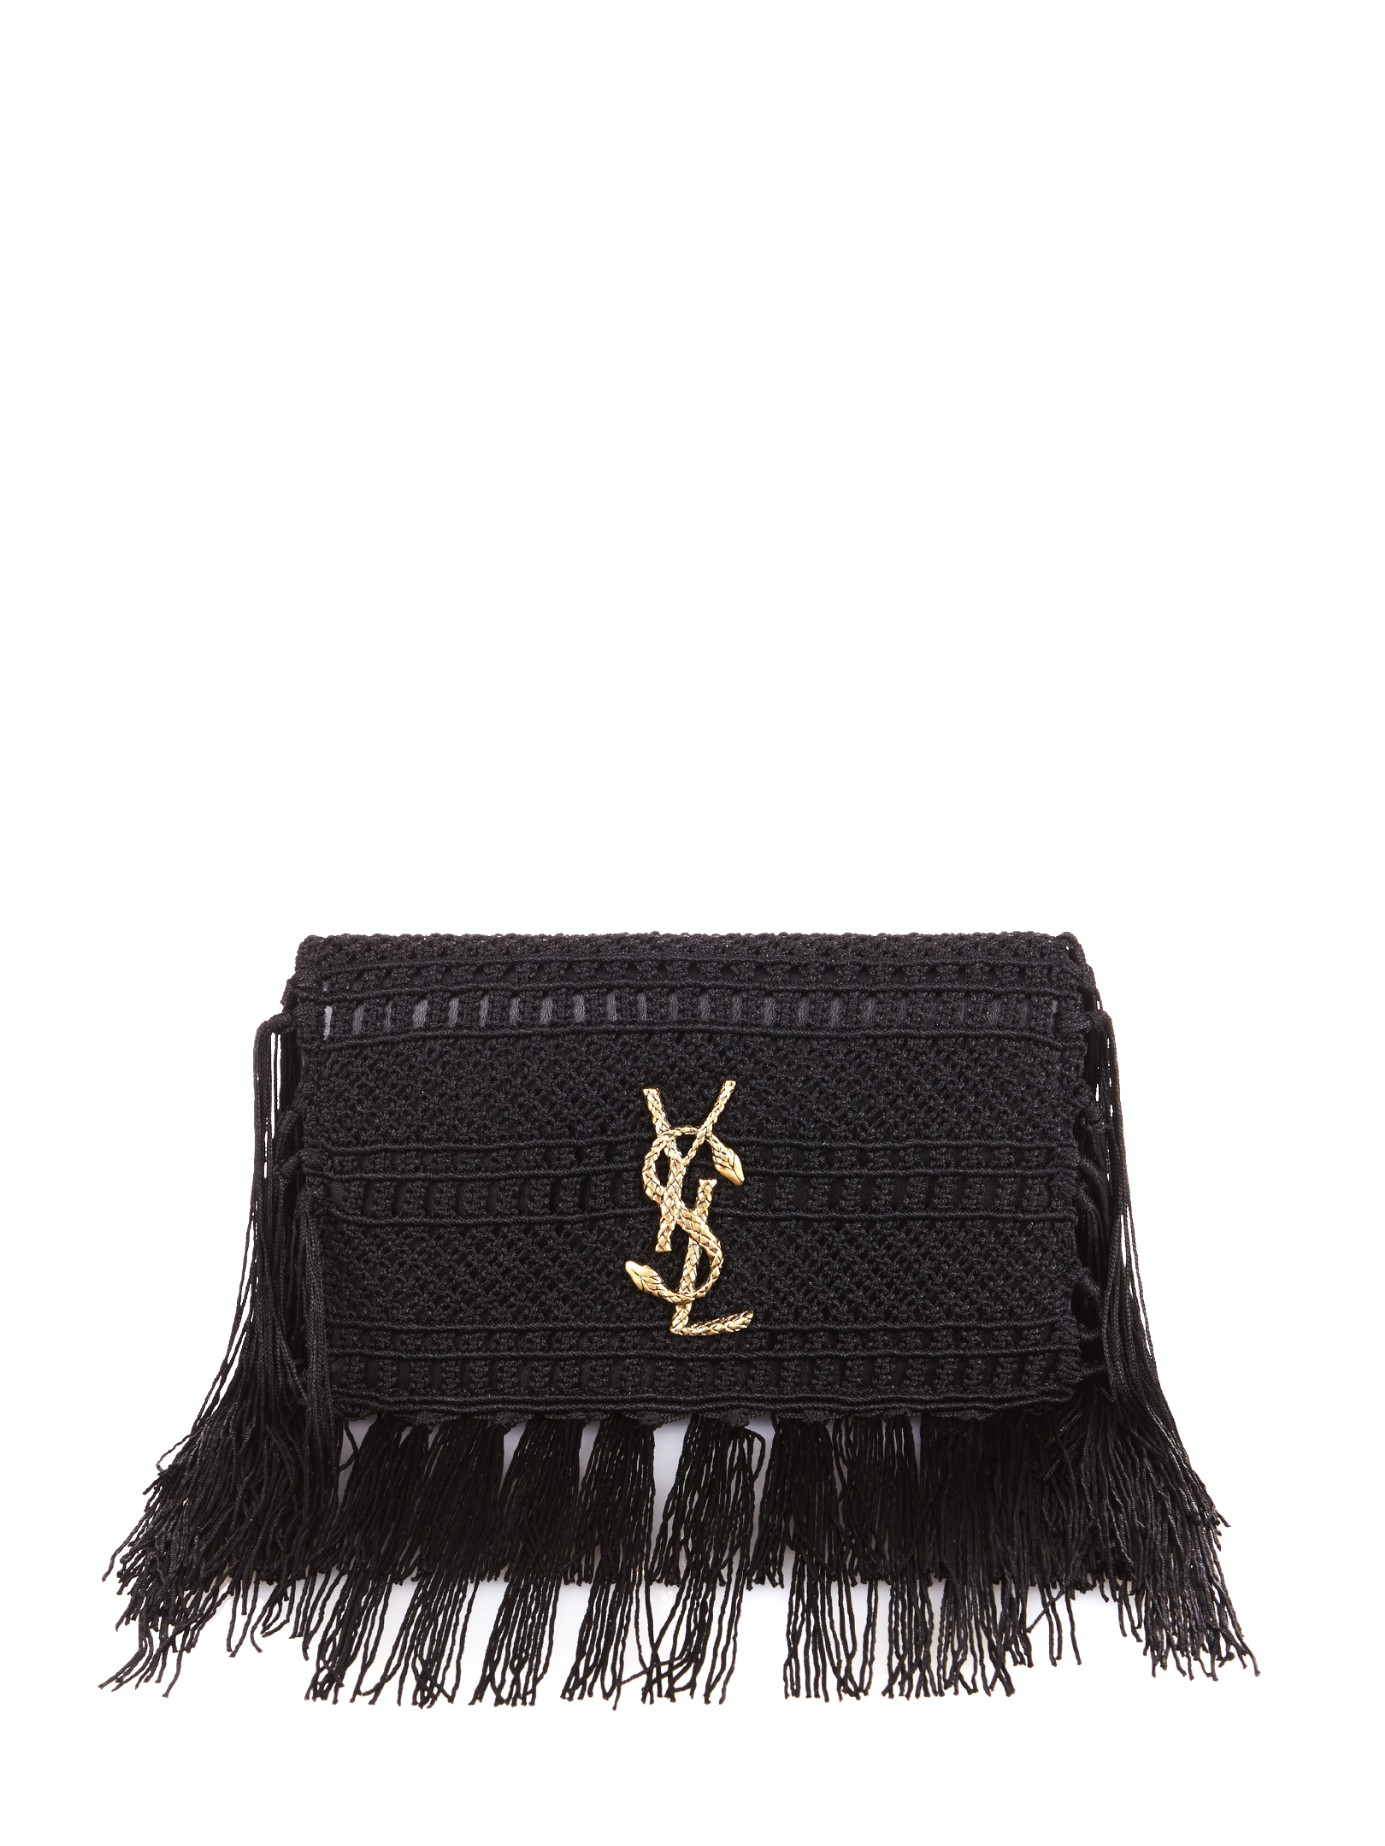 Lyst - Saint Laurent Monogram Serpent-logo Crochet Clutch in Black 6d0dd7f8cfd1b